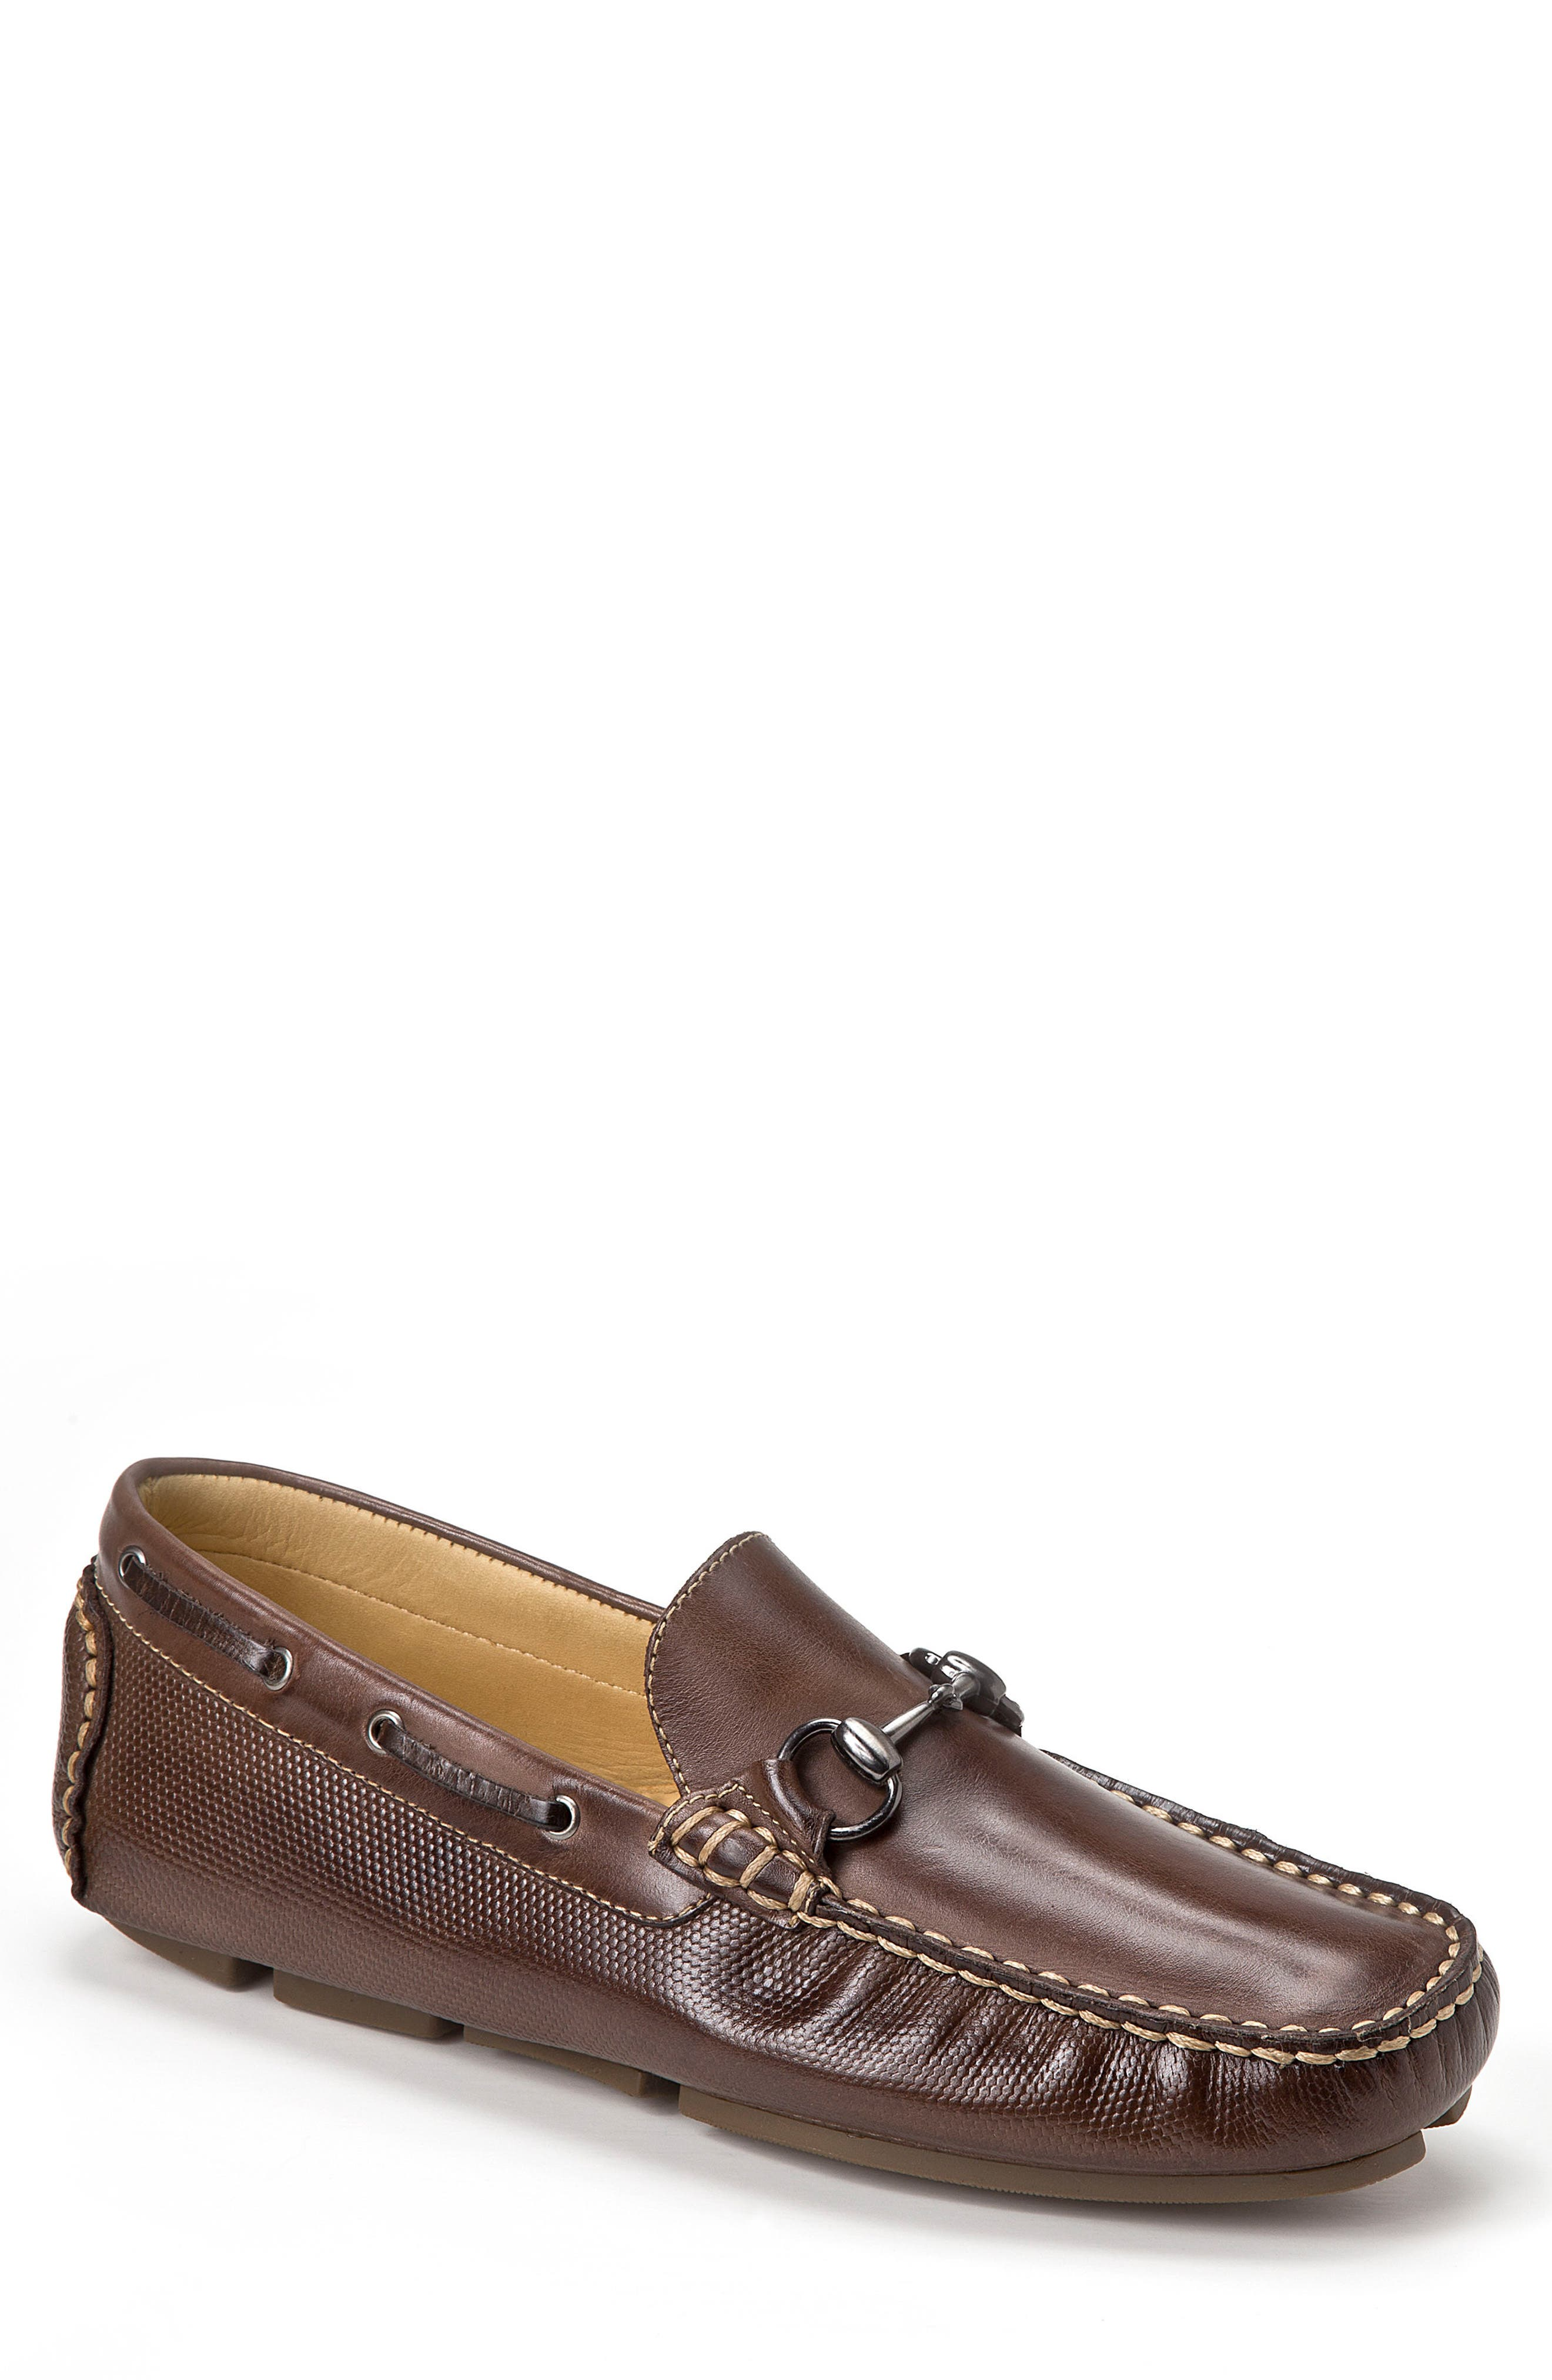 Neil Embossed Loafer,                             Main thumbnail 1, color,                             BROWN LEATHER